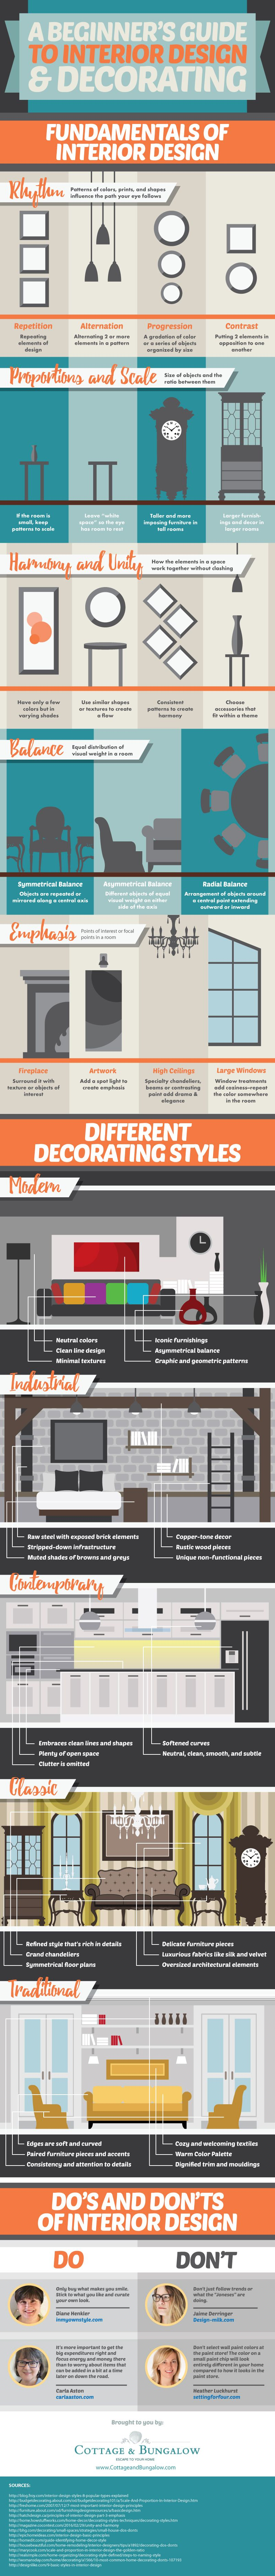 interior design reference manual - Interior design, Interiors and Infographic on Pinterest